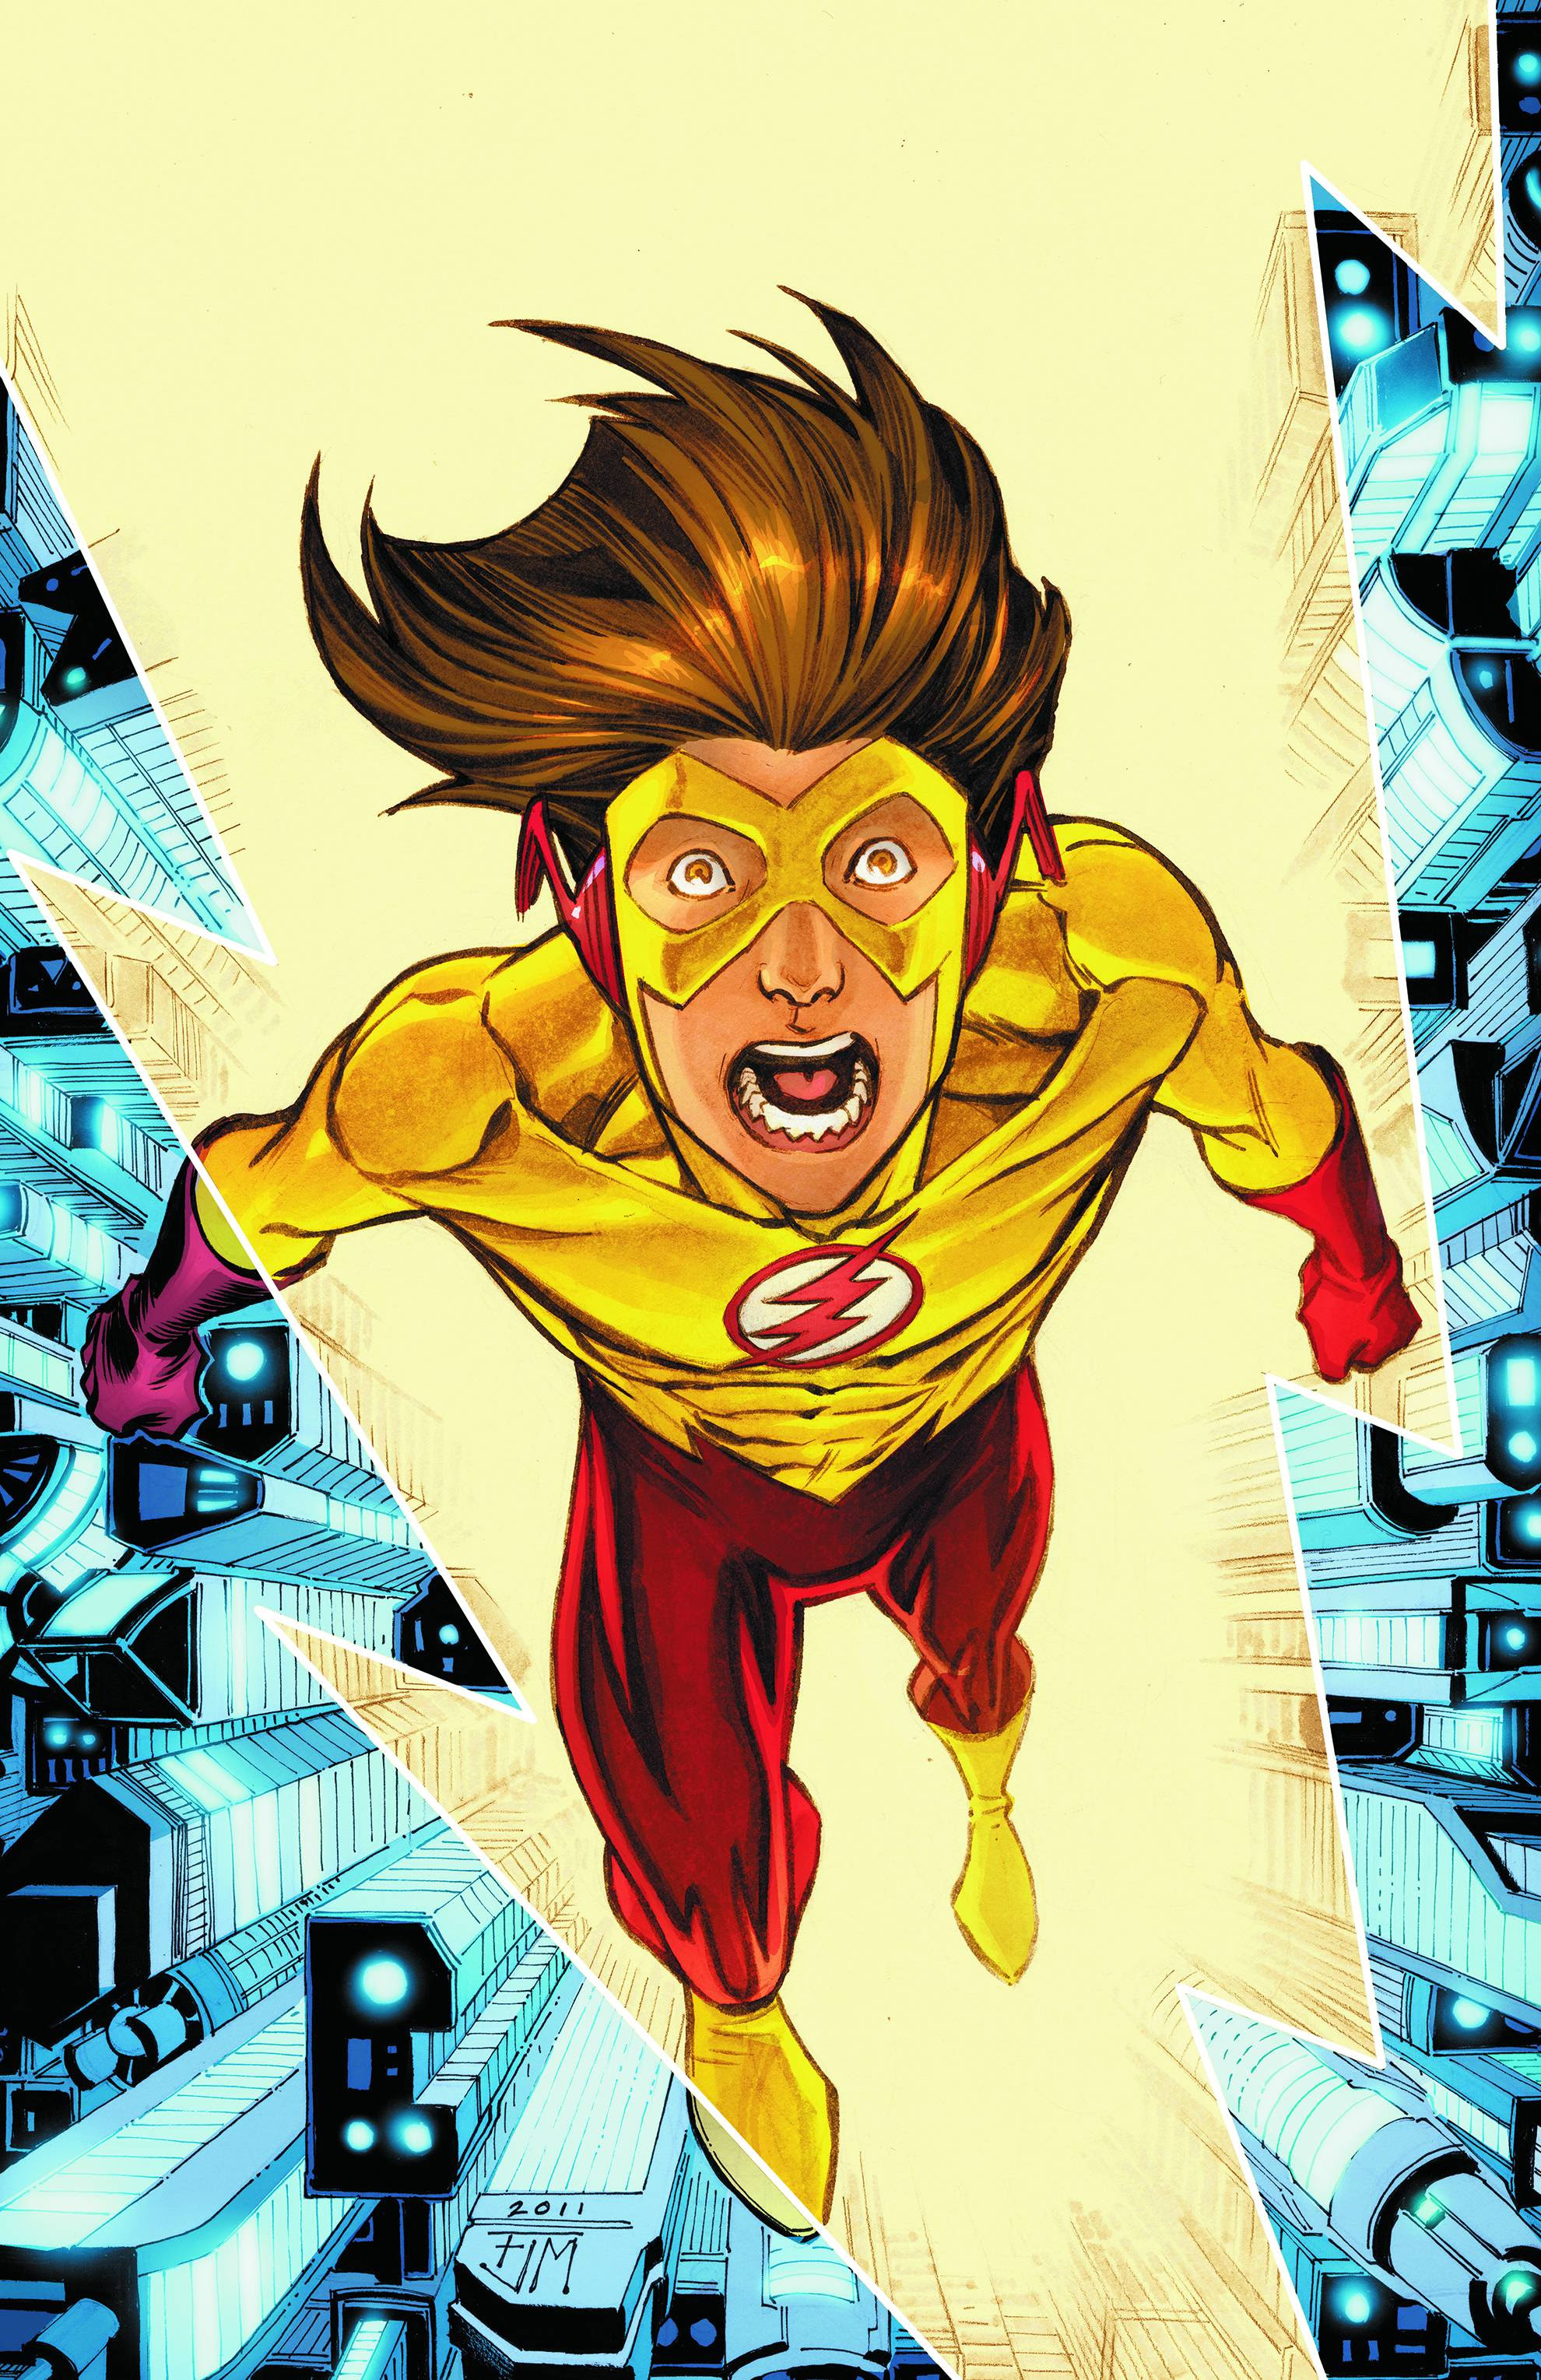 http://www.phantom-attic.com/wp-content/uploads/2011/07/flashpoint-kid-flash01.jpg